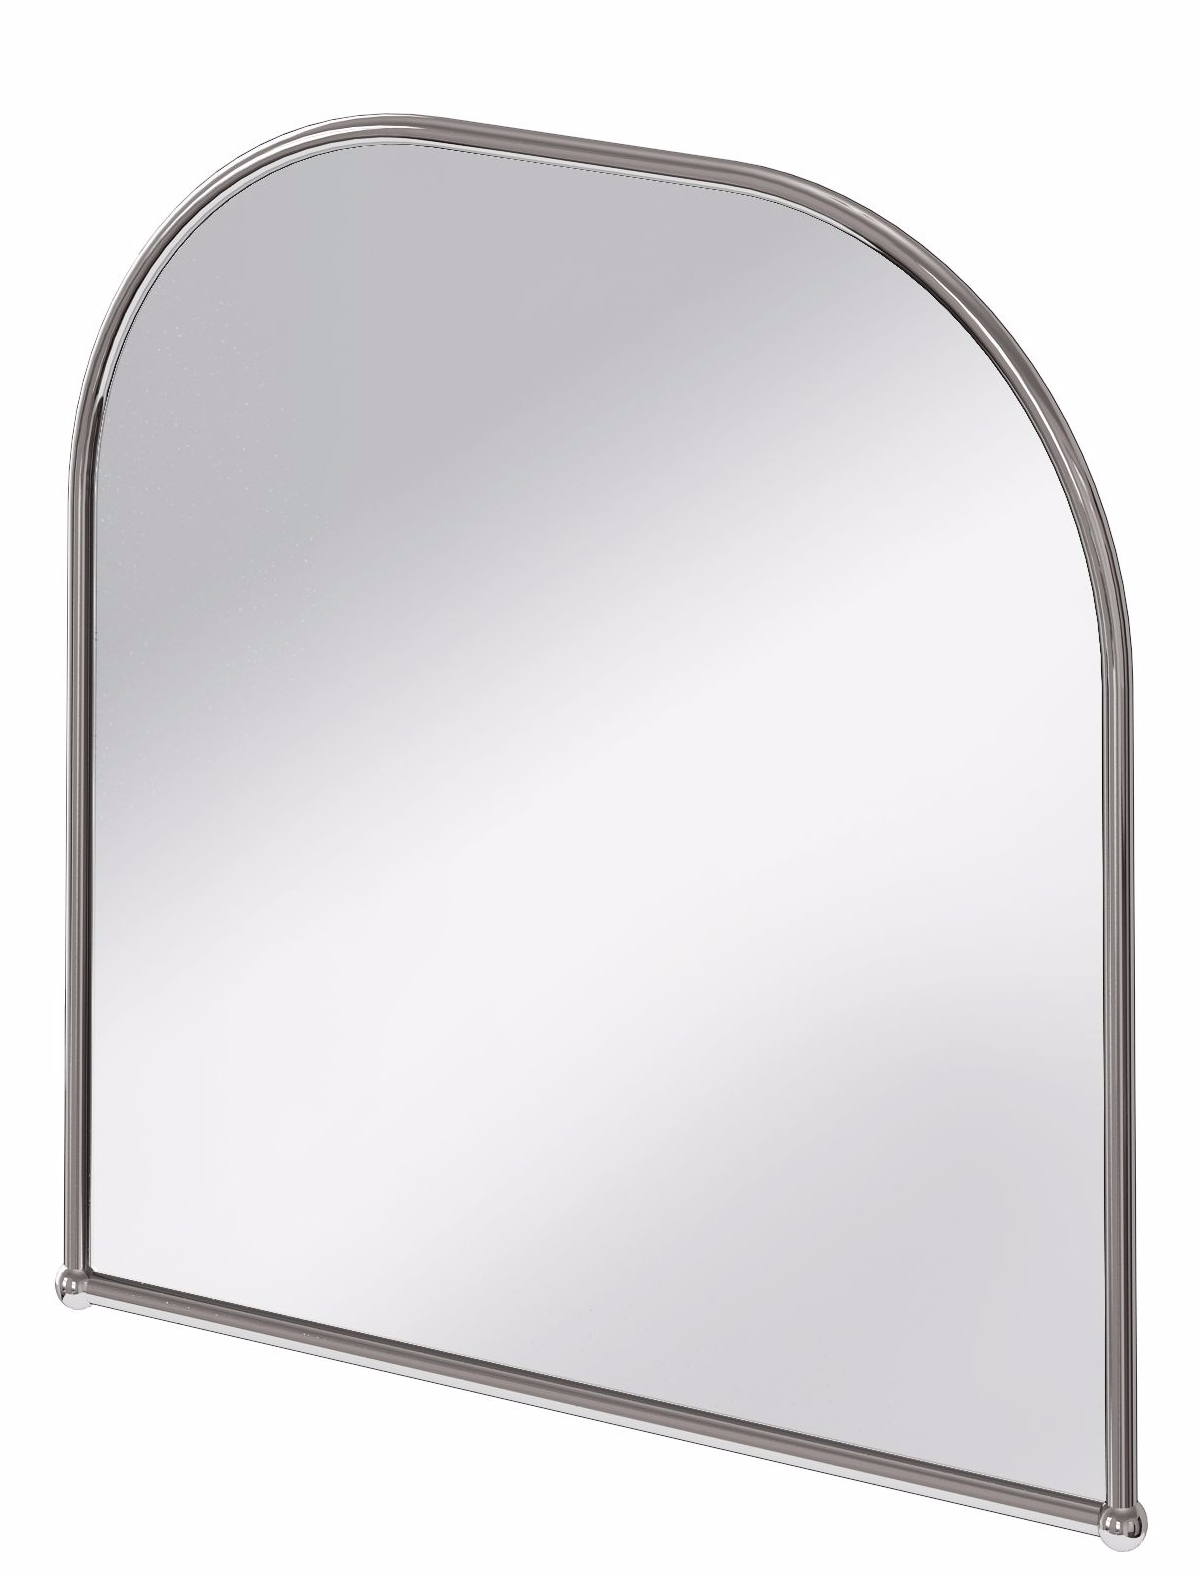 Burlington Curved Top Polished Stainless Steel Framed Traditional Pertaining To Curved Top Mirror (Image 10 of 20)